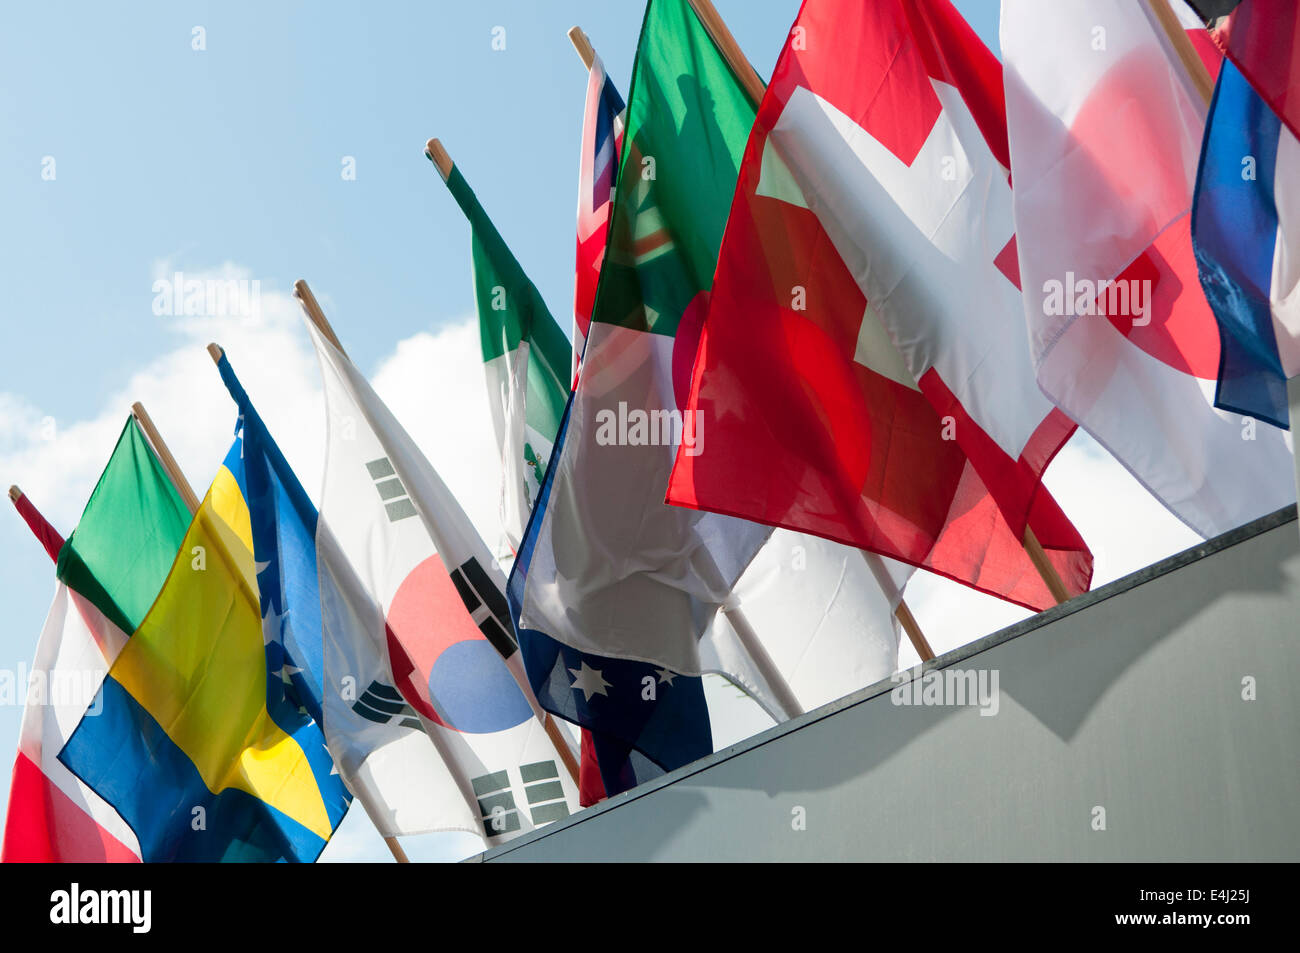 Flags of many nations. - Stock Image